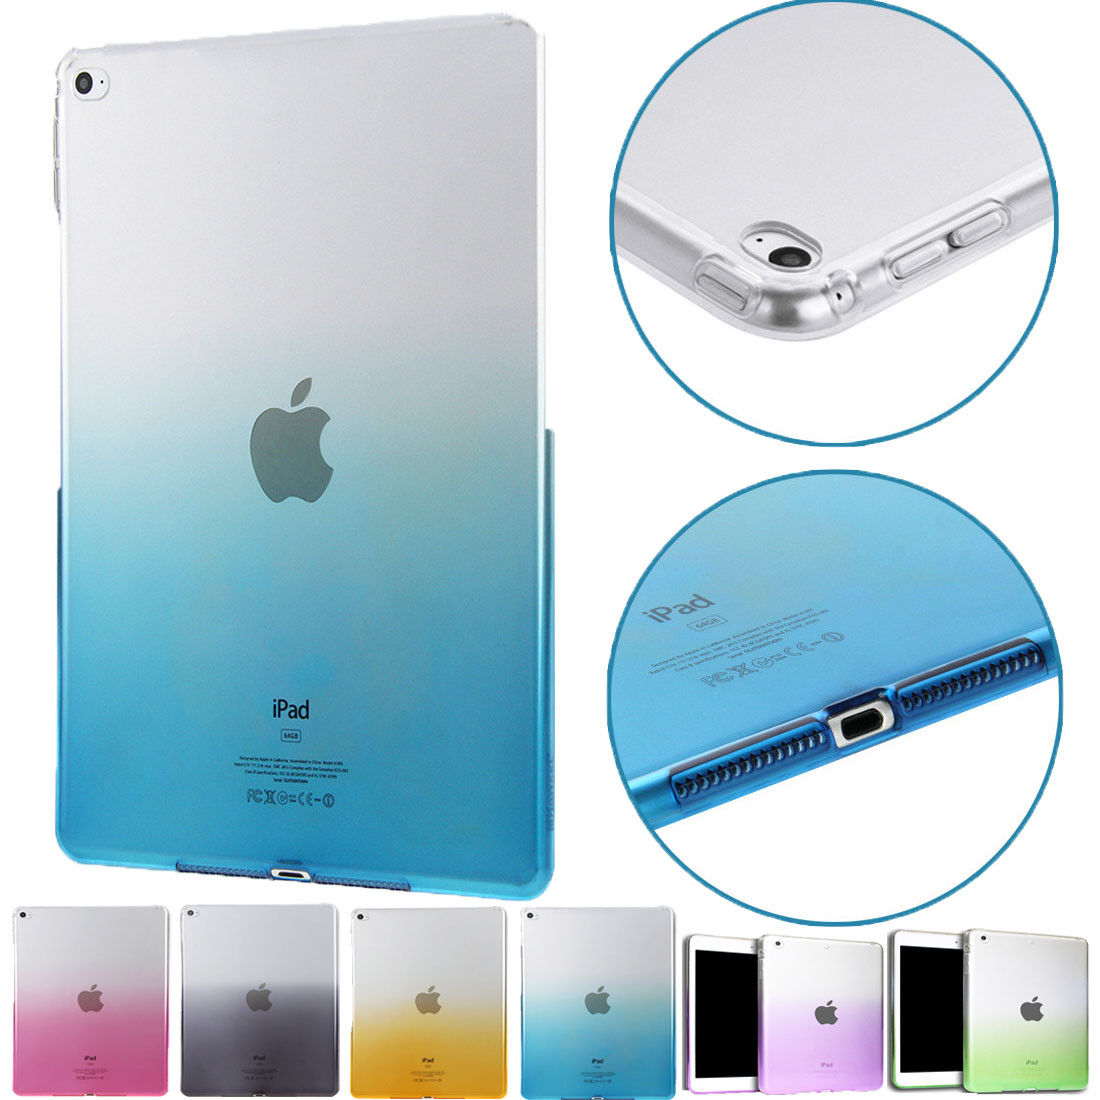 For iPad 9.7 2017 Case Cover Silicone Soft TPU A1822 A1823 Gradient Clear Case Slim Shell Back Cover For iPad 2017 2018 9.7 inch for apple ipad mini 1 2 3 4 silicone soft case colorful gradient transparent back cover for ipad mini clear tpu protective shell